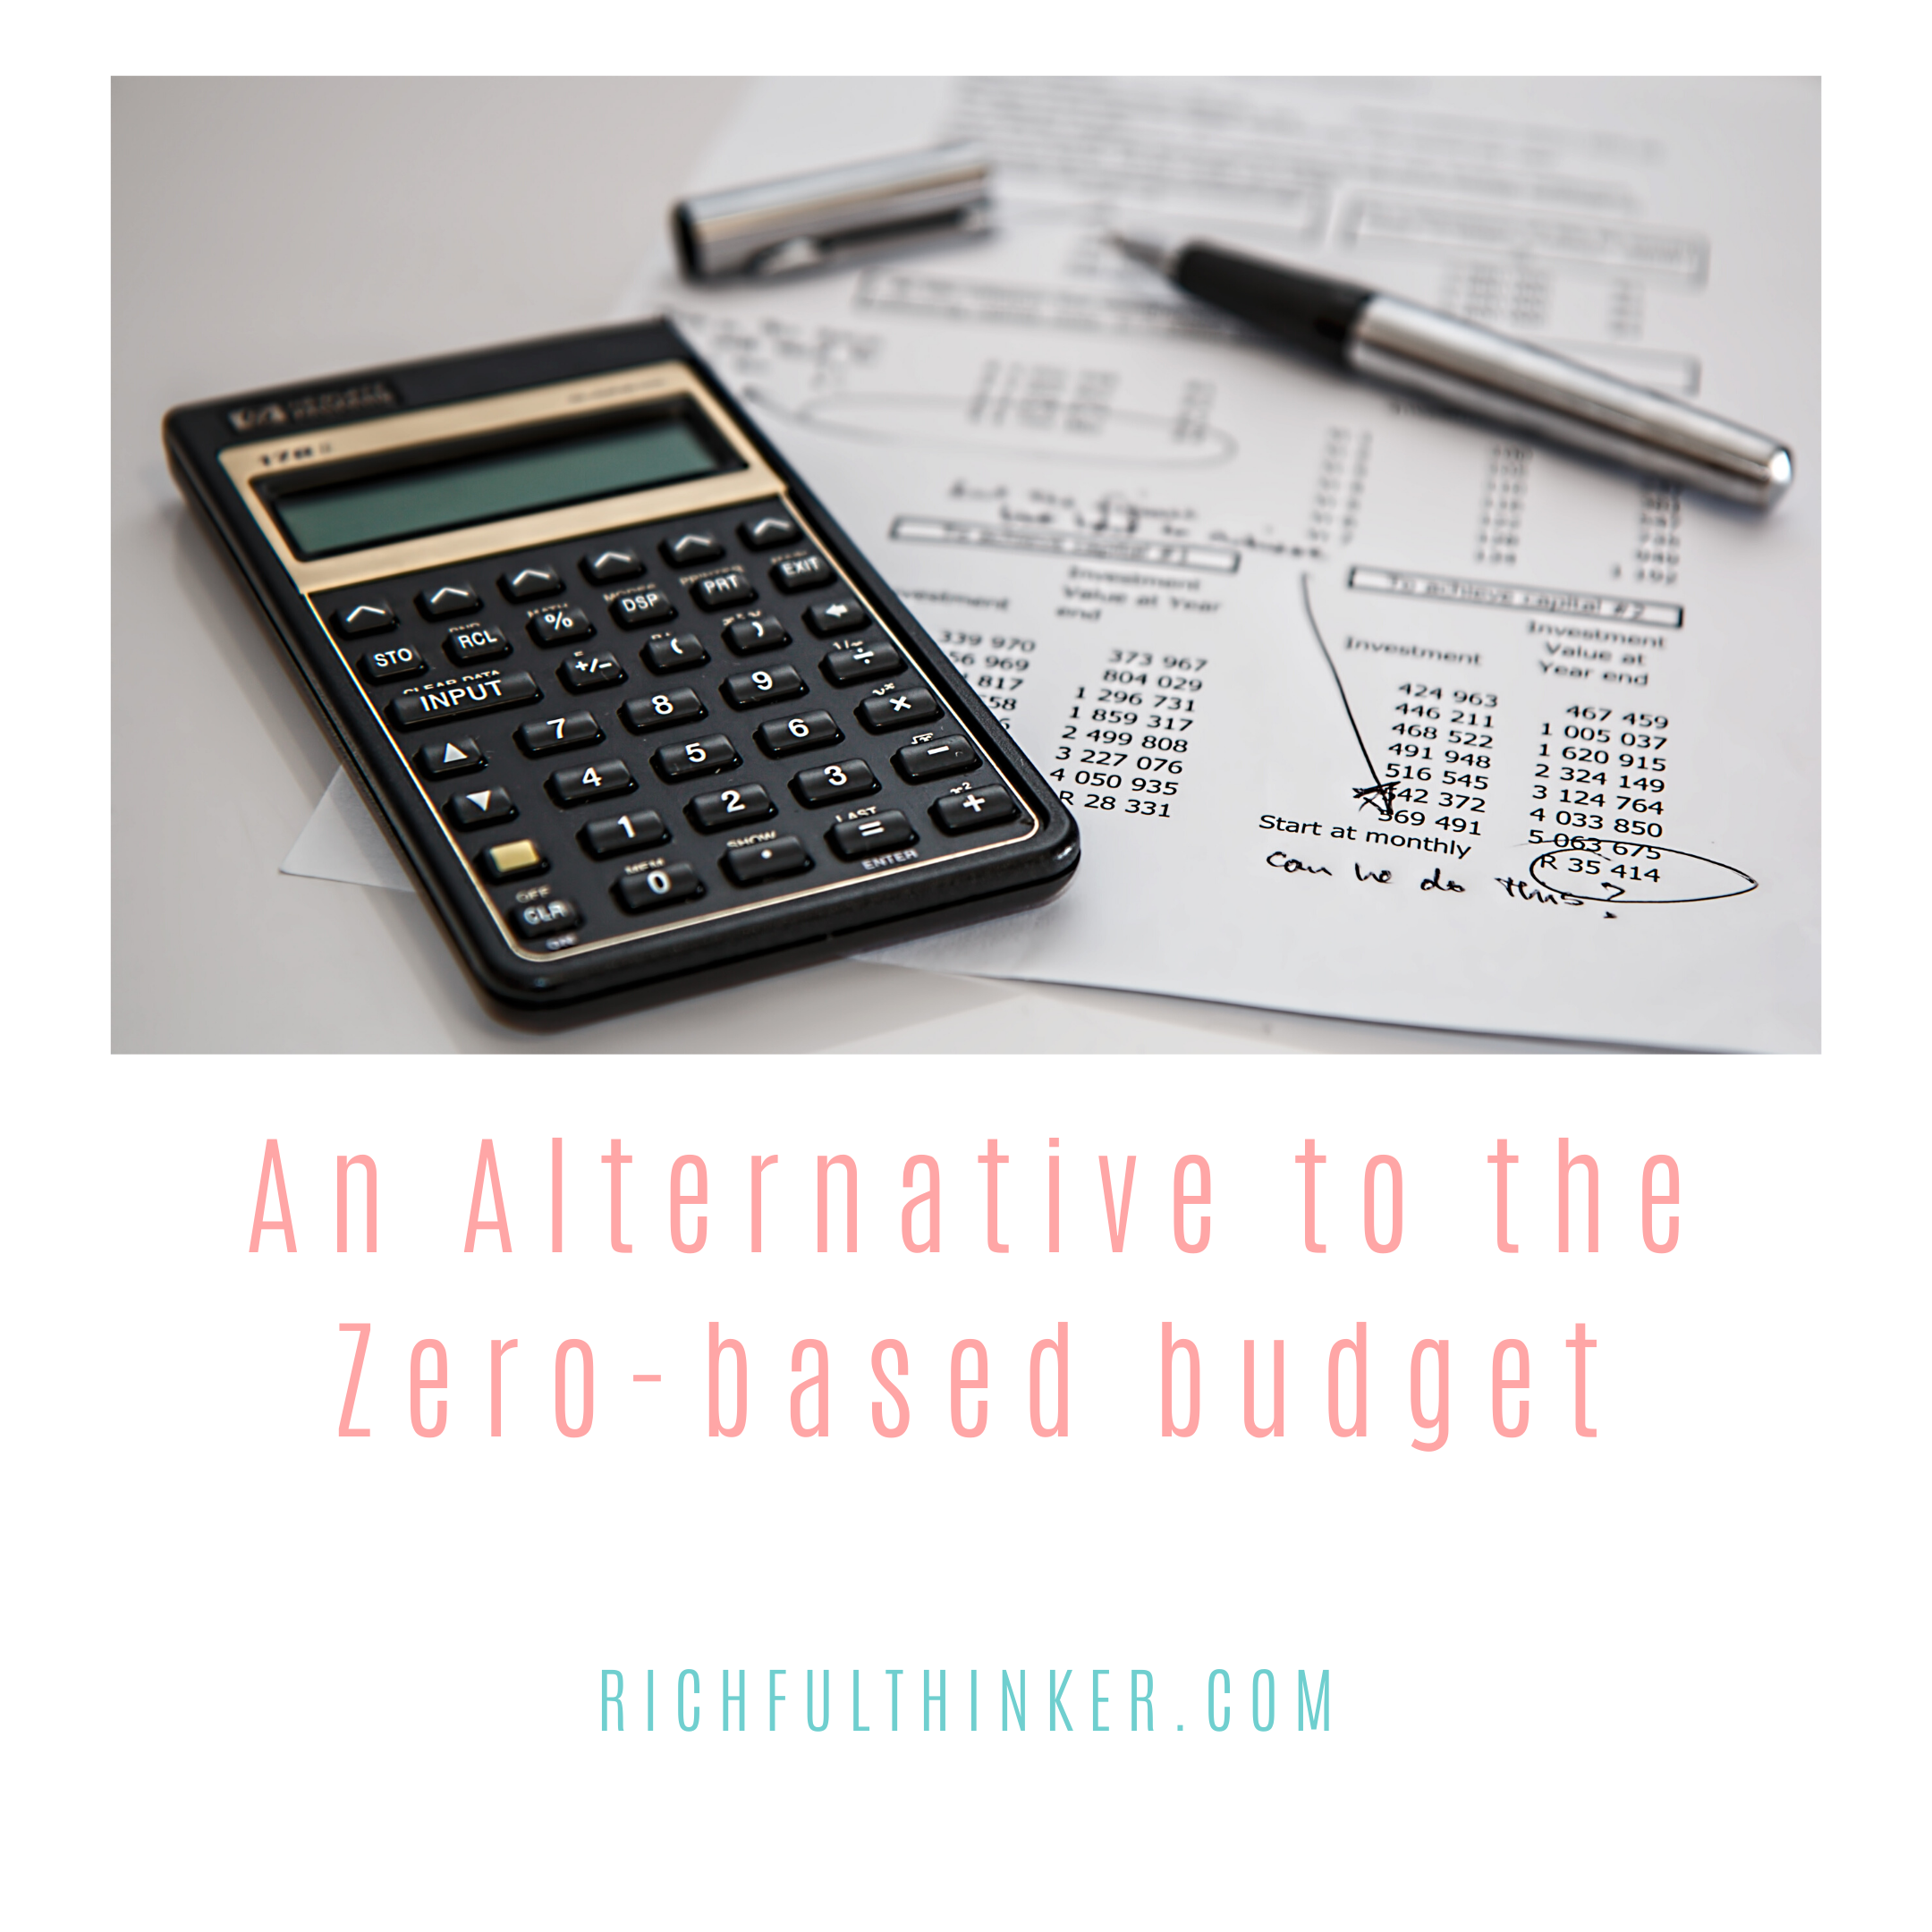 An alternative to the Zero-based budget?